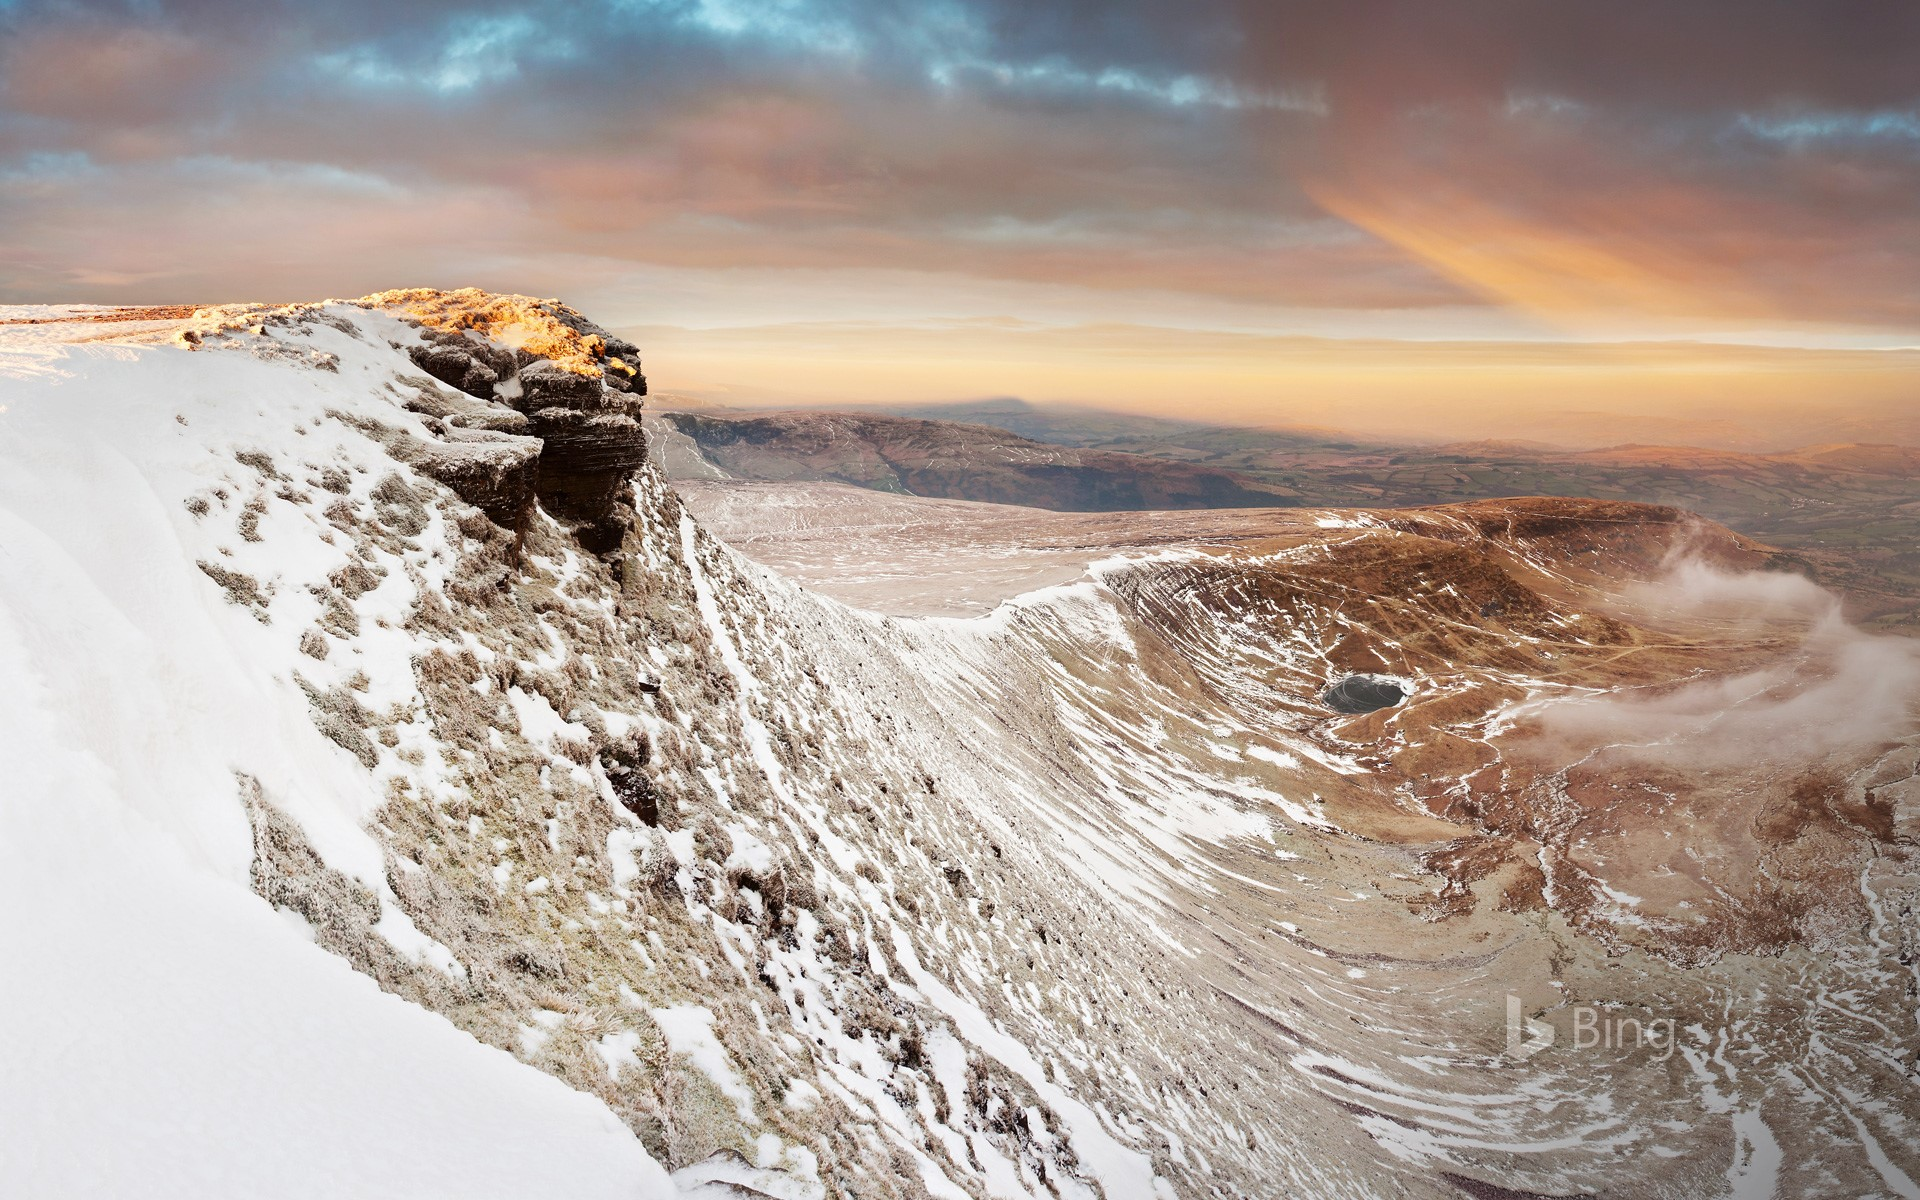 Pen y Fan in the Brecon Beacons National Park, South Wales